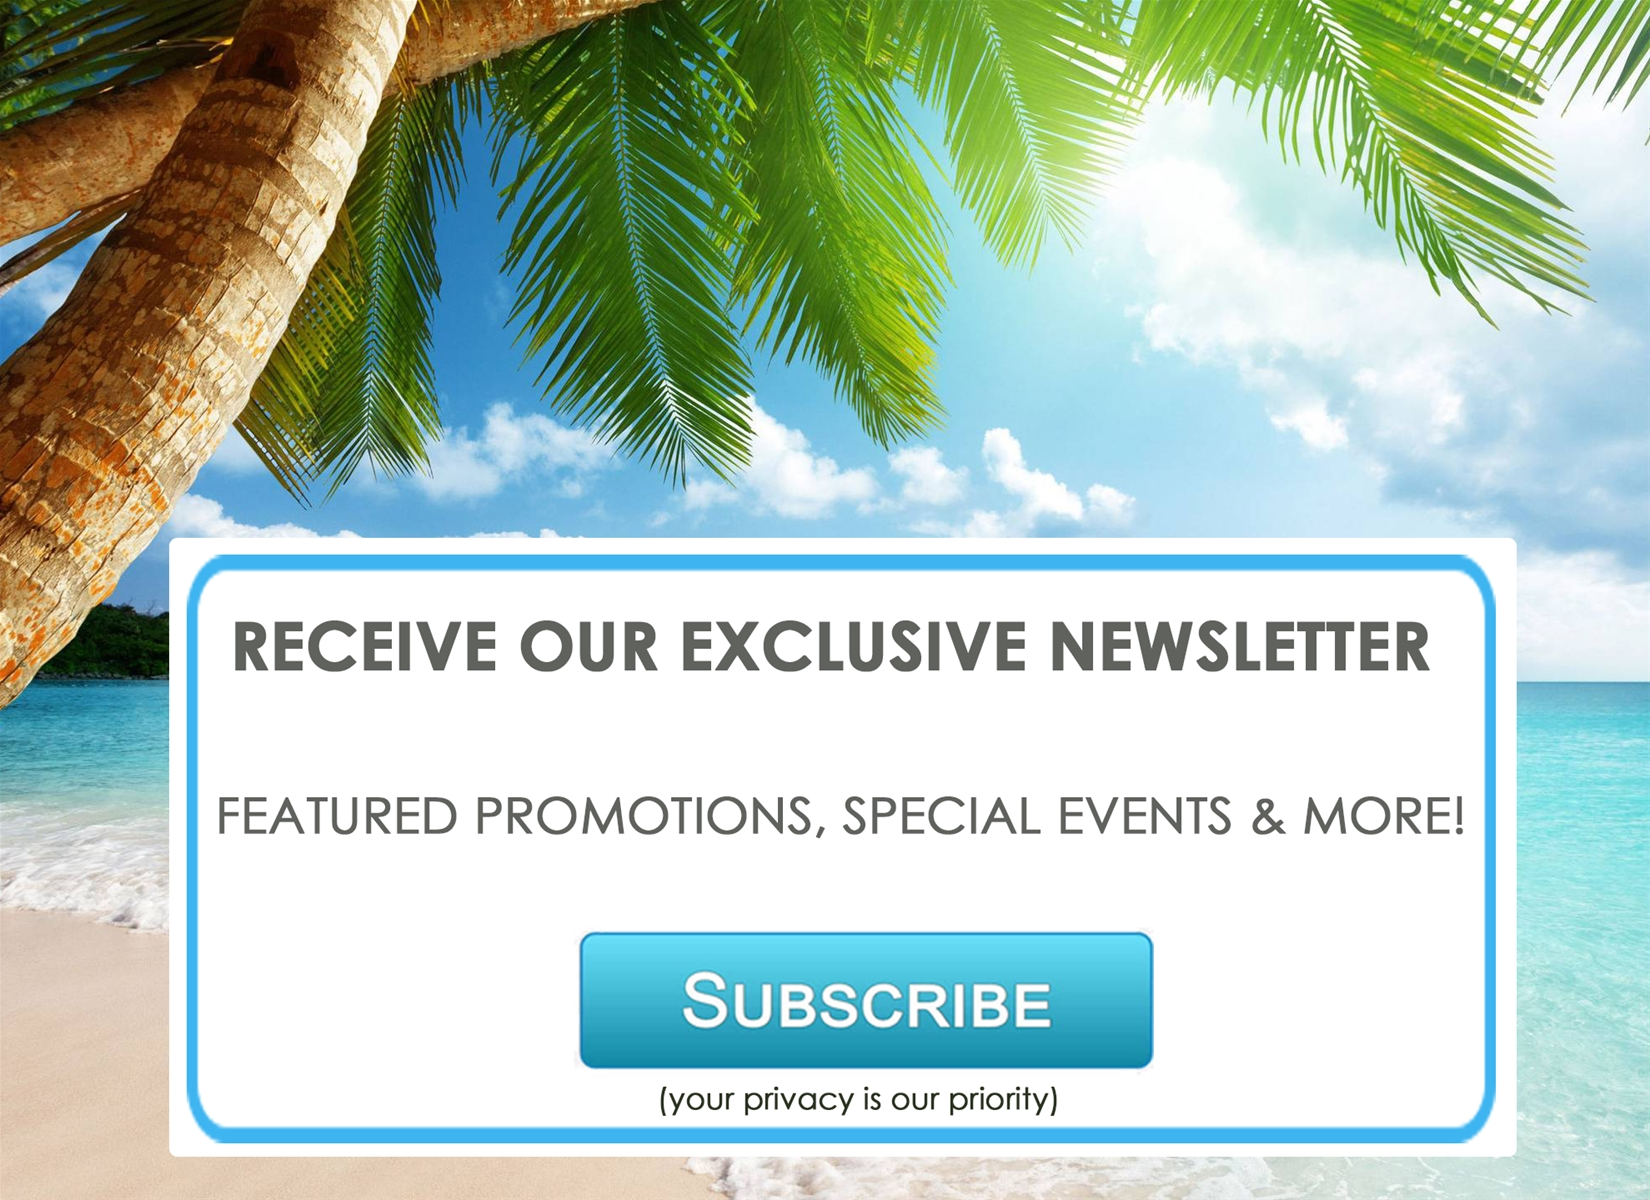 luxurious destinations newsletter